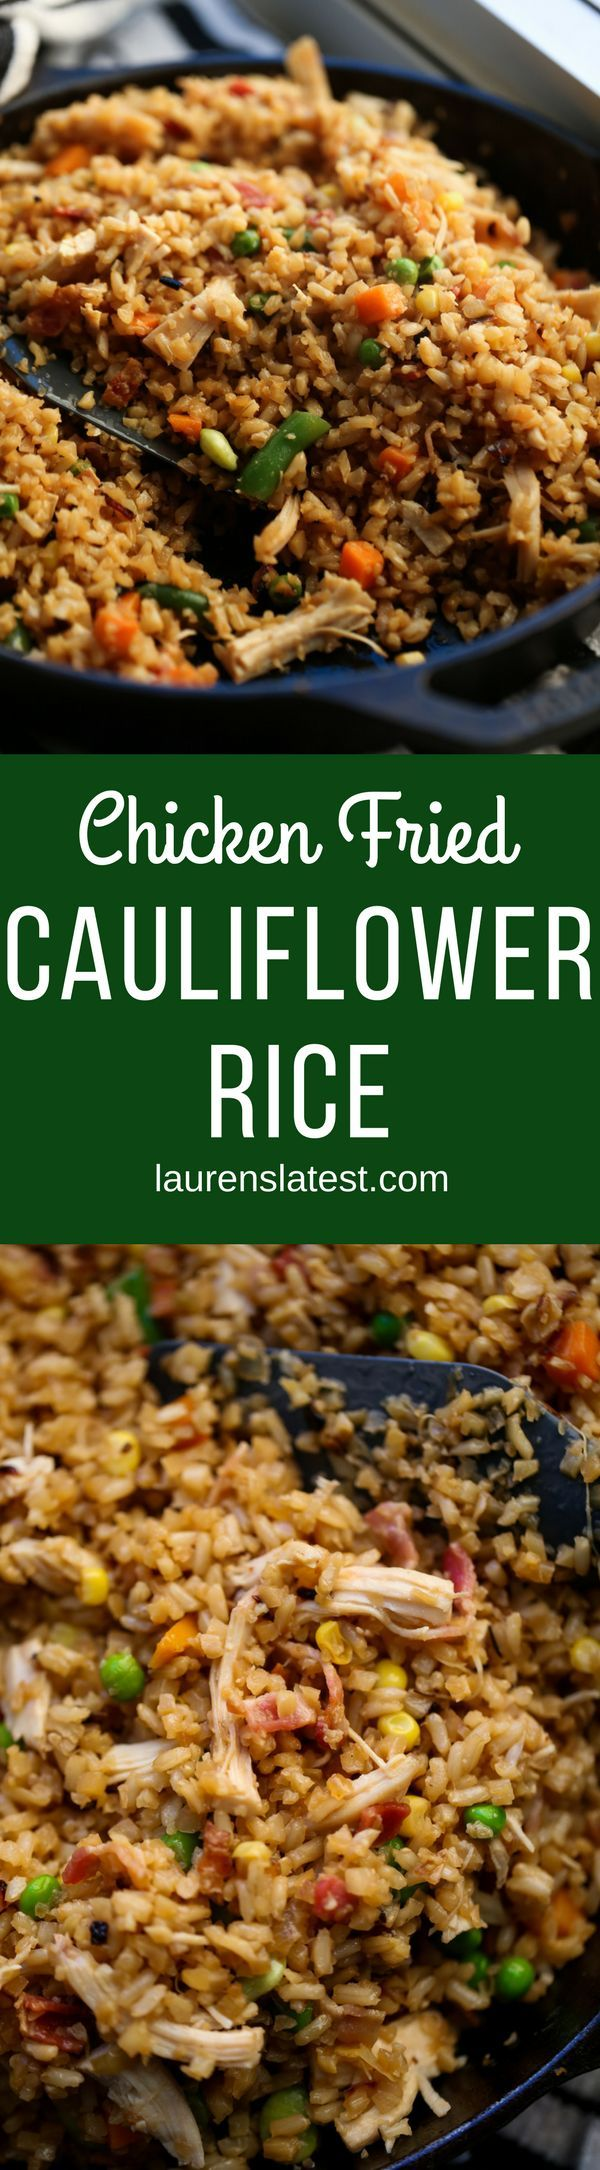 Chicken Fried Cauliflower Rice is a healthy, clean take on the original fried rice recipe that comes together in 10 minutes and tastes amazing! #healthydinner #cauliflowerrice #Laurenslatest